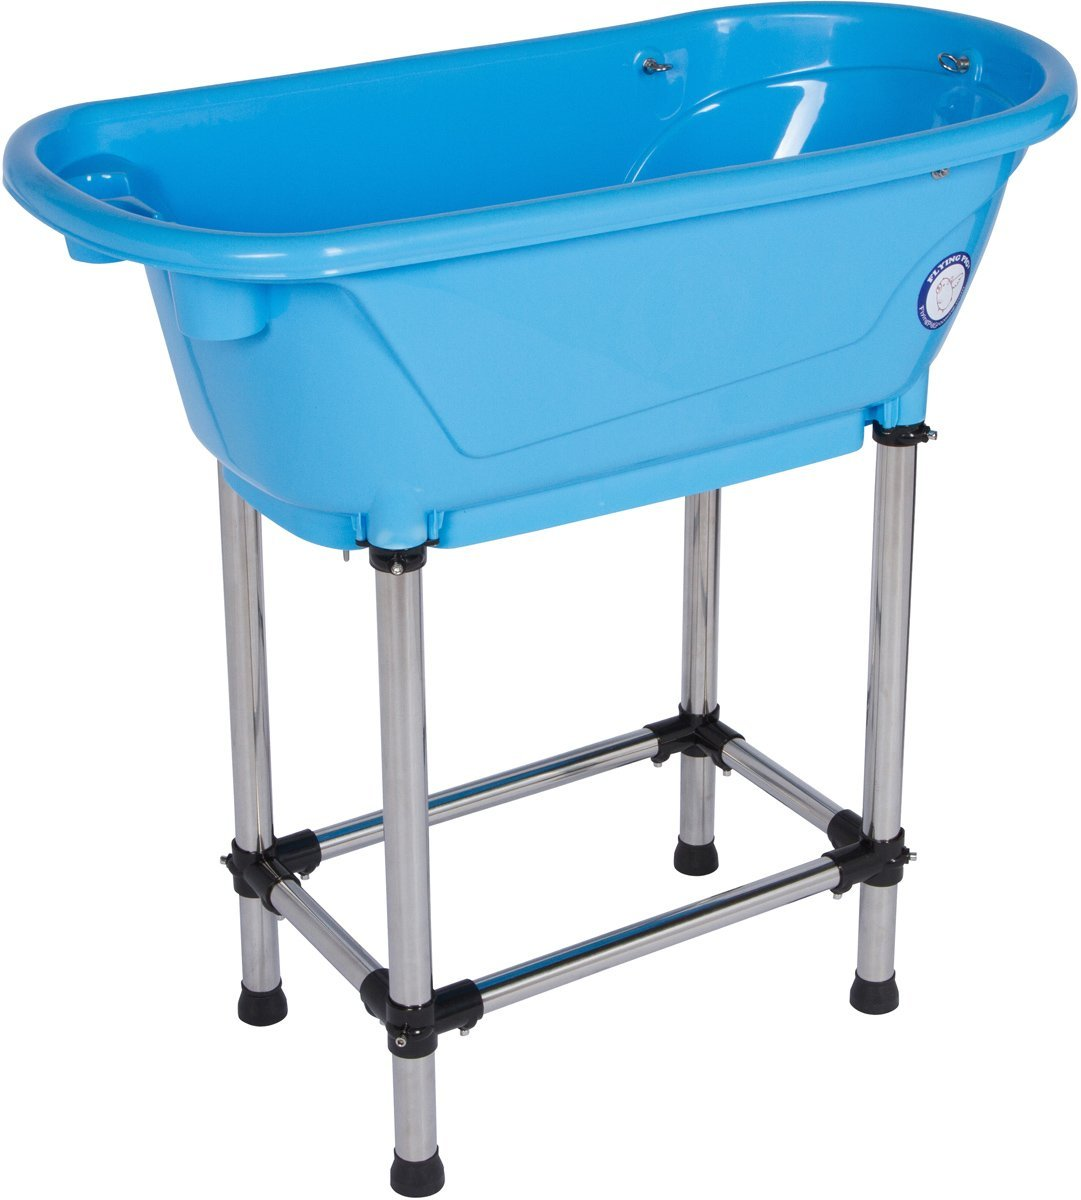 Best Dog Bath Tub For Home 7 - Best top care with dogs